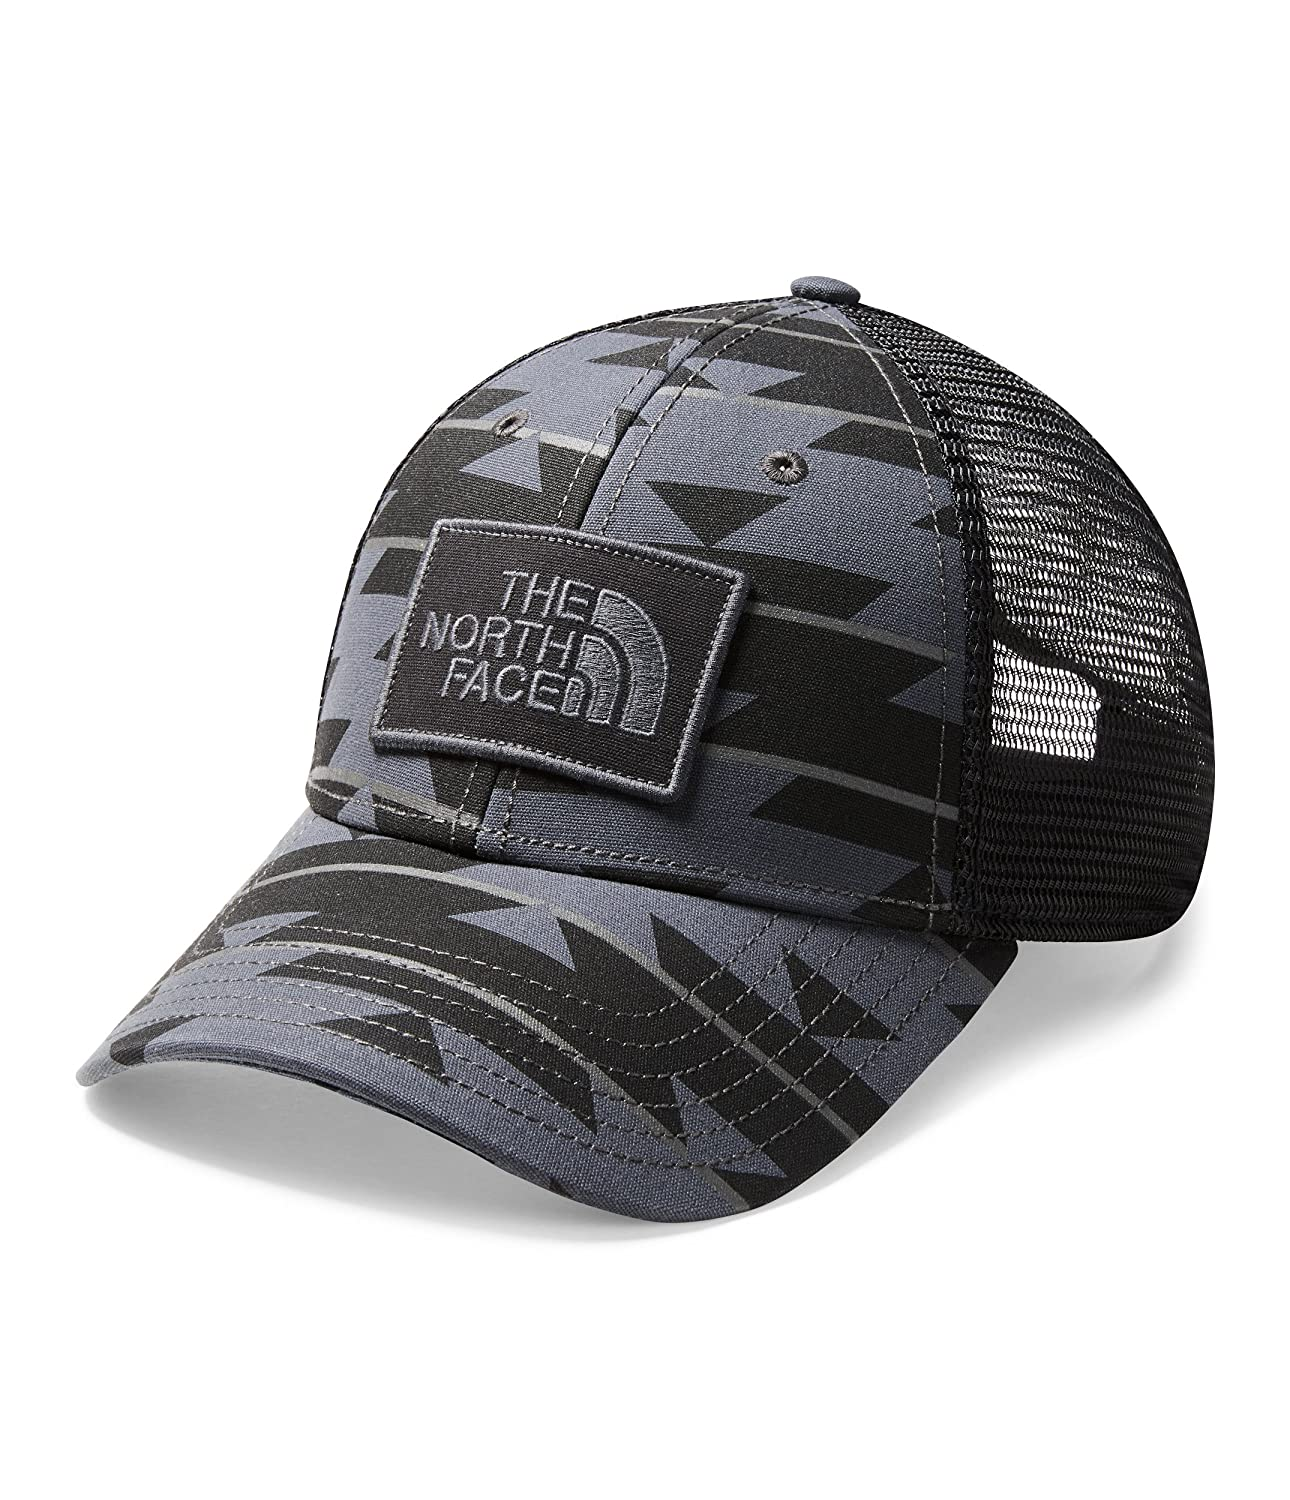 The North Face Printed Mudder Truck - Asphalt Grey Linear Topo Print - OS  at Amazon Men s Clothing store  c1e9a557080